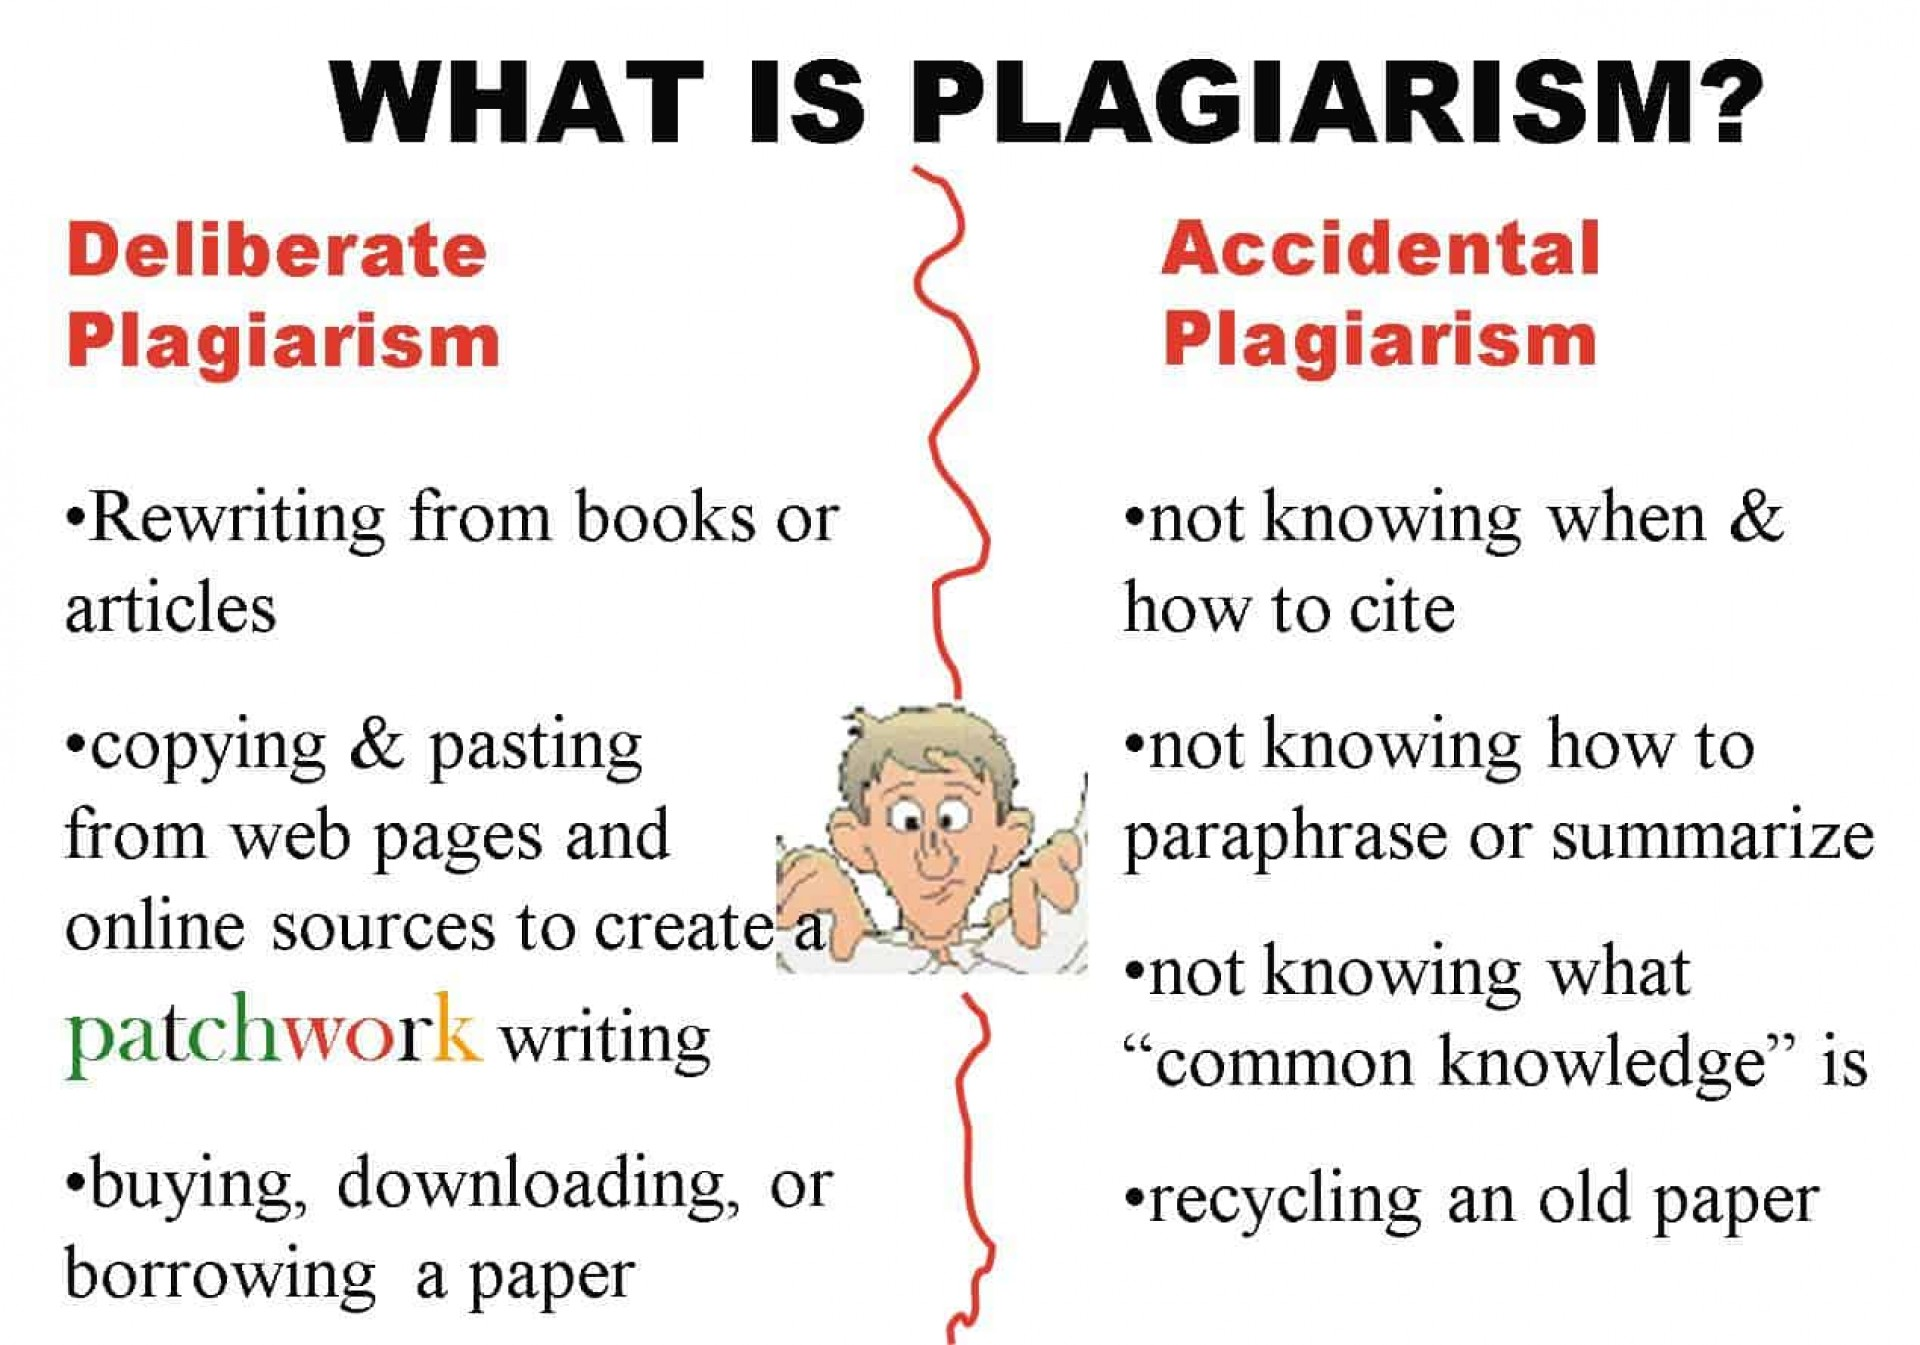 005 Free Plagiarism Checker For Students Online Toolkit Thepensters Com Research Paper What Striking Toolkit.thepensters.com 1920